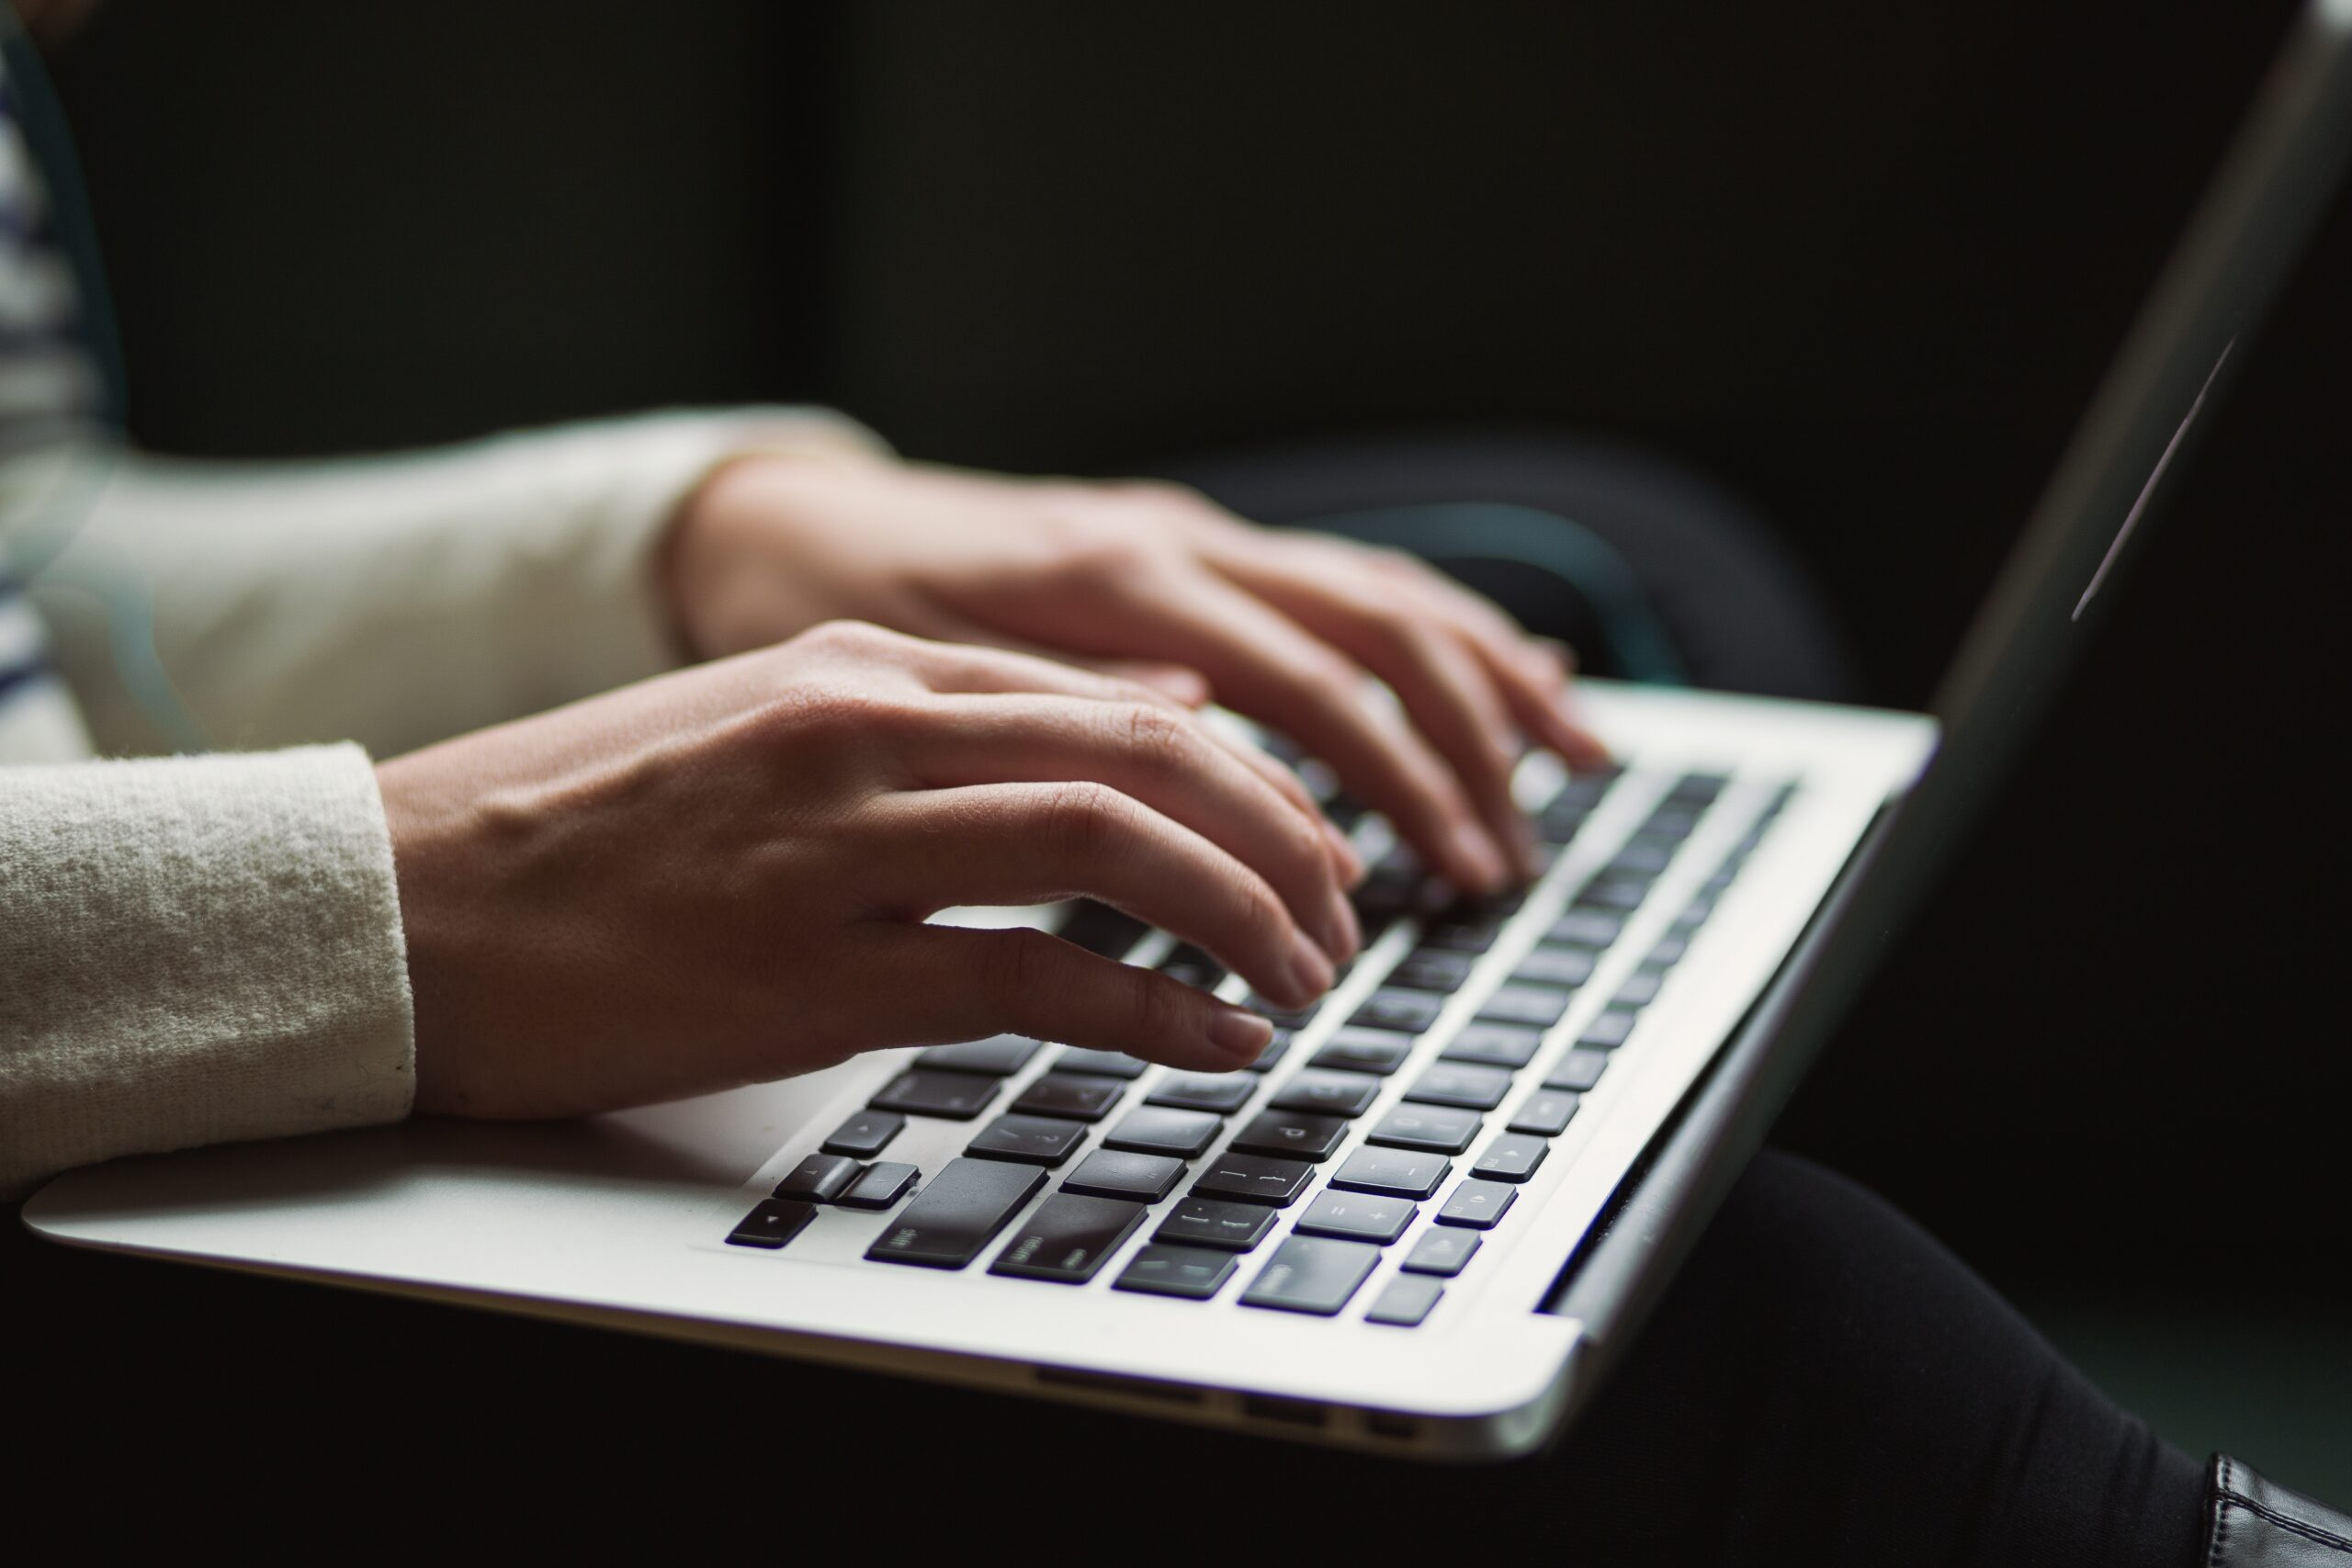 writing a resume using a laptop